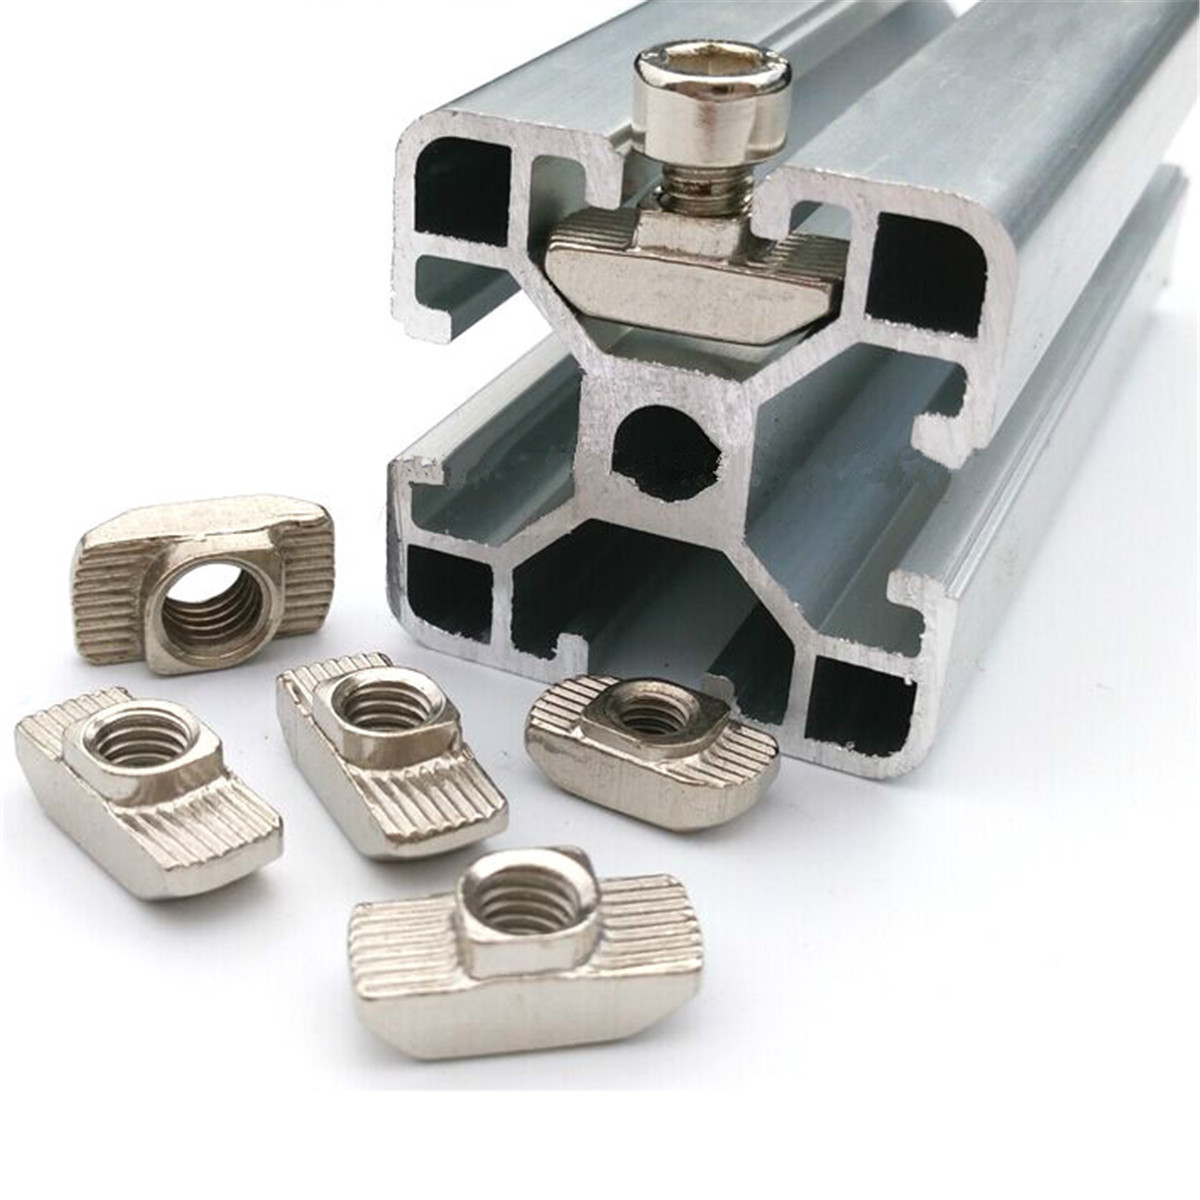 uxcell M8 Thread Drop in T-Nuts 10 Pcs for 40 Series T-Slot Aluminum Extrusion